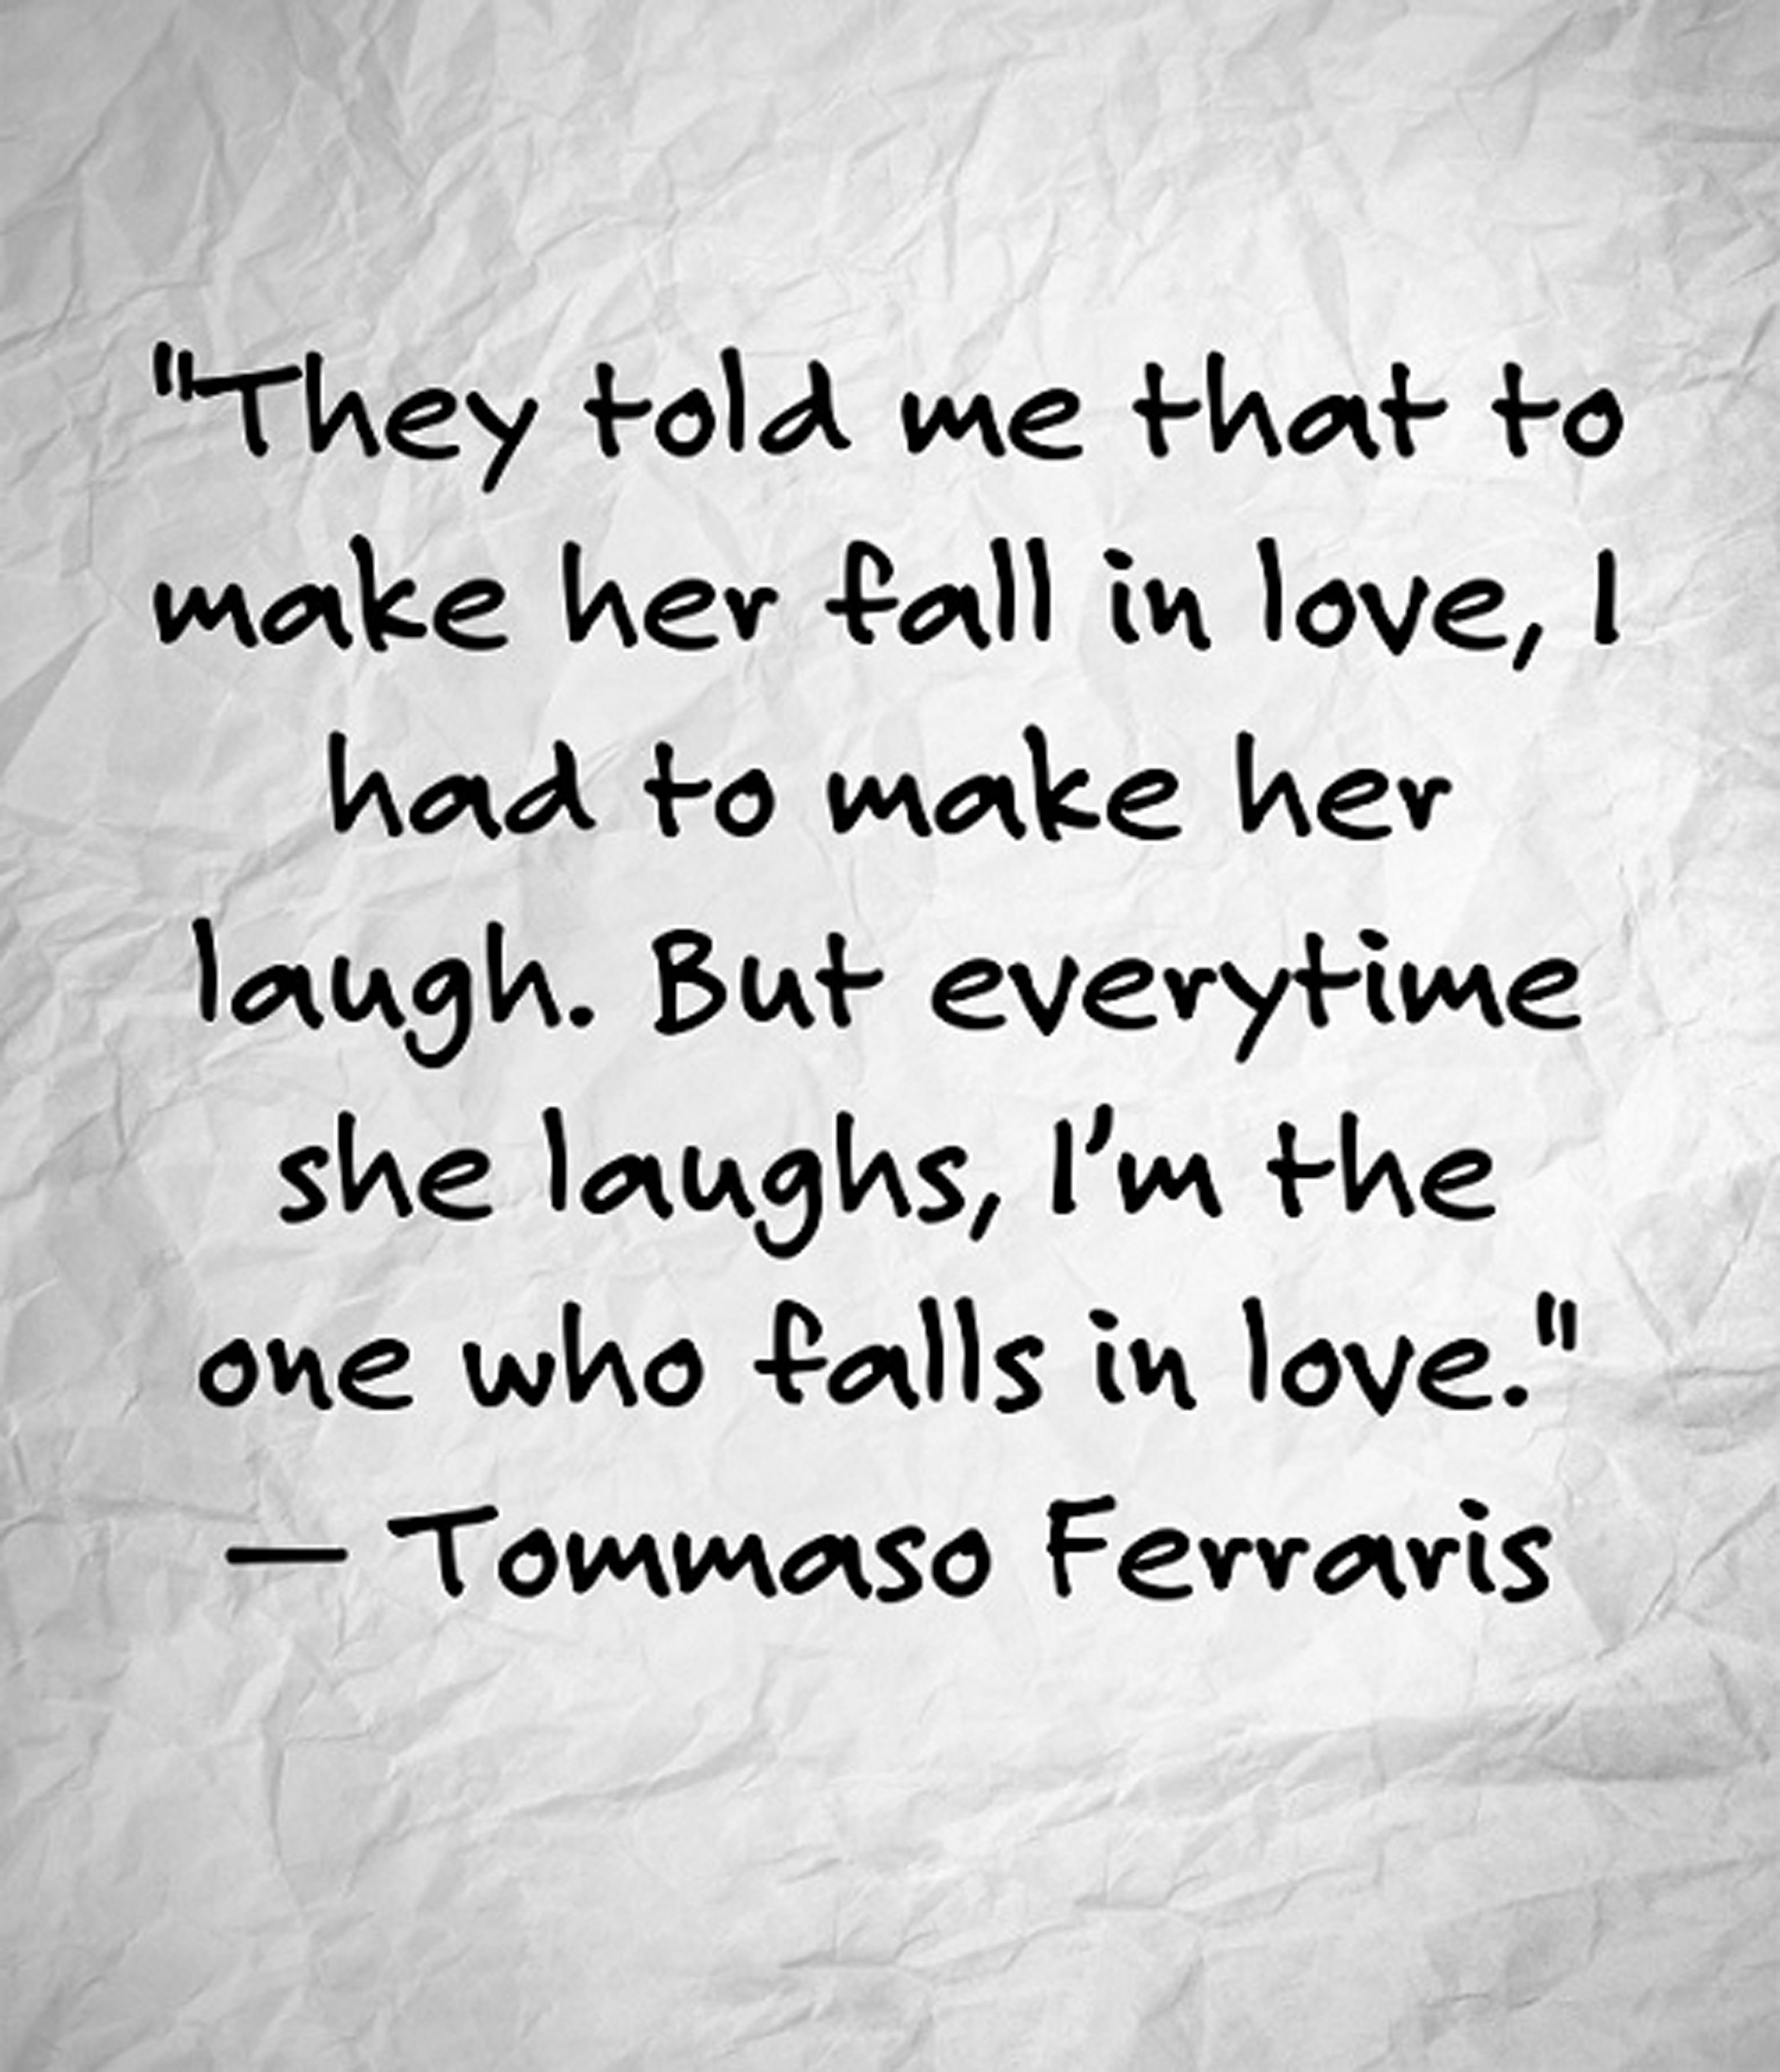 Quotes To Make Her Fall In Love They Told Me That To Make Her Fall In Love I Had To Make Her Laugh